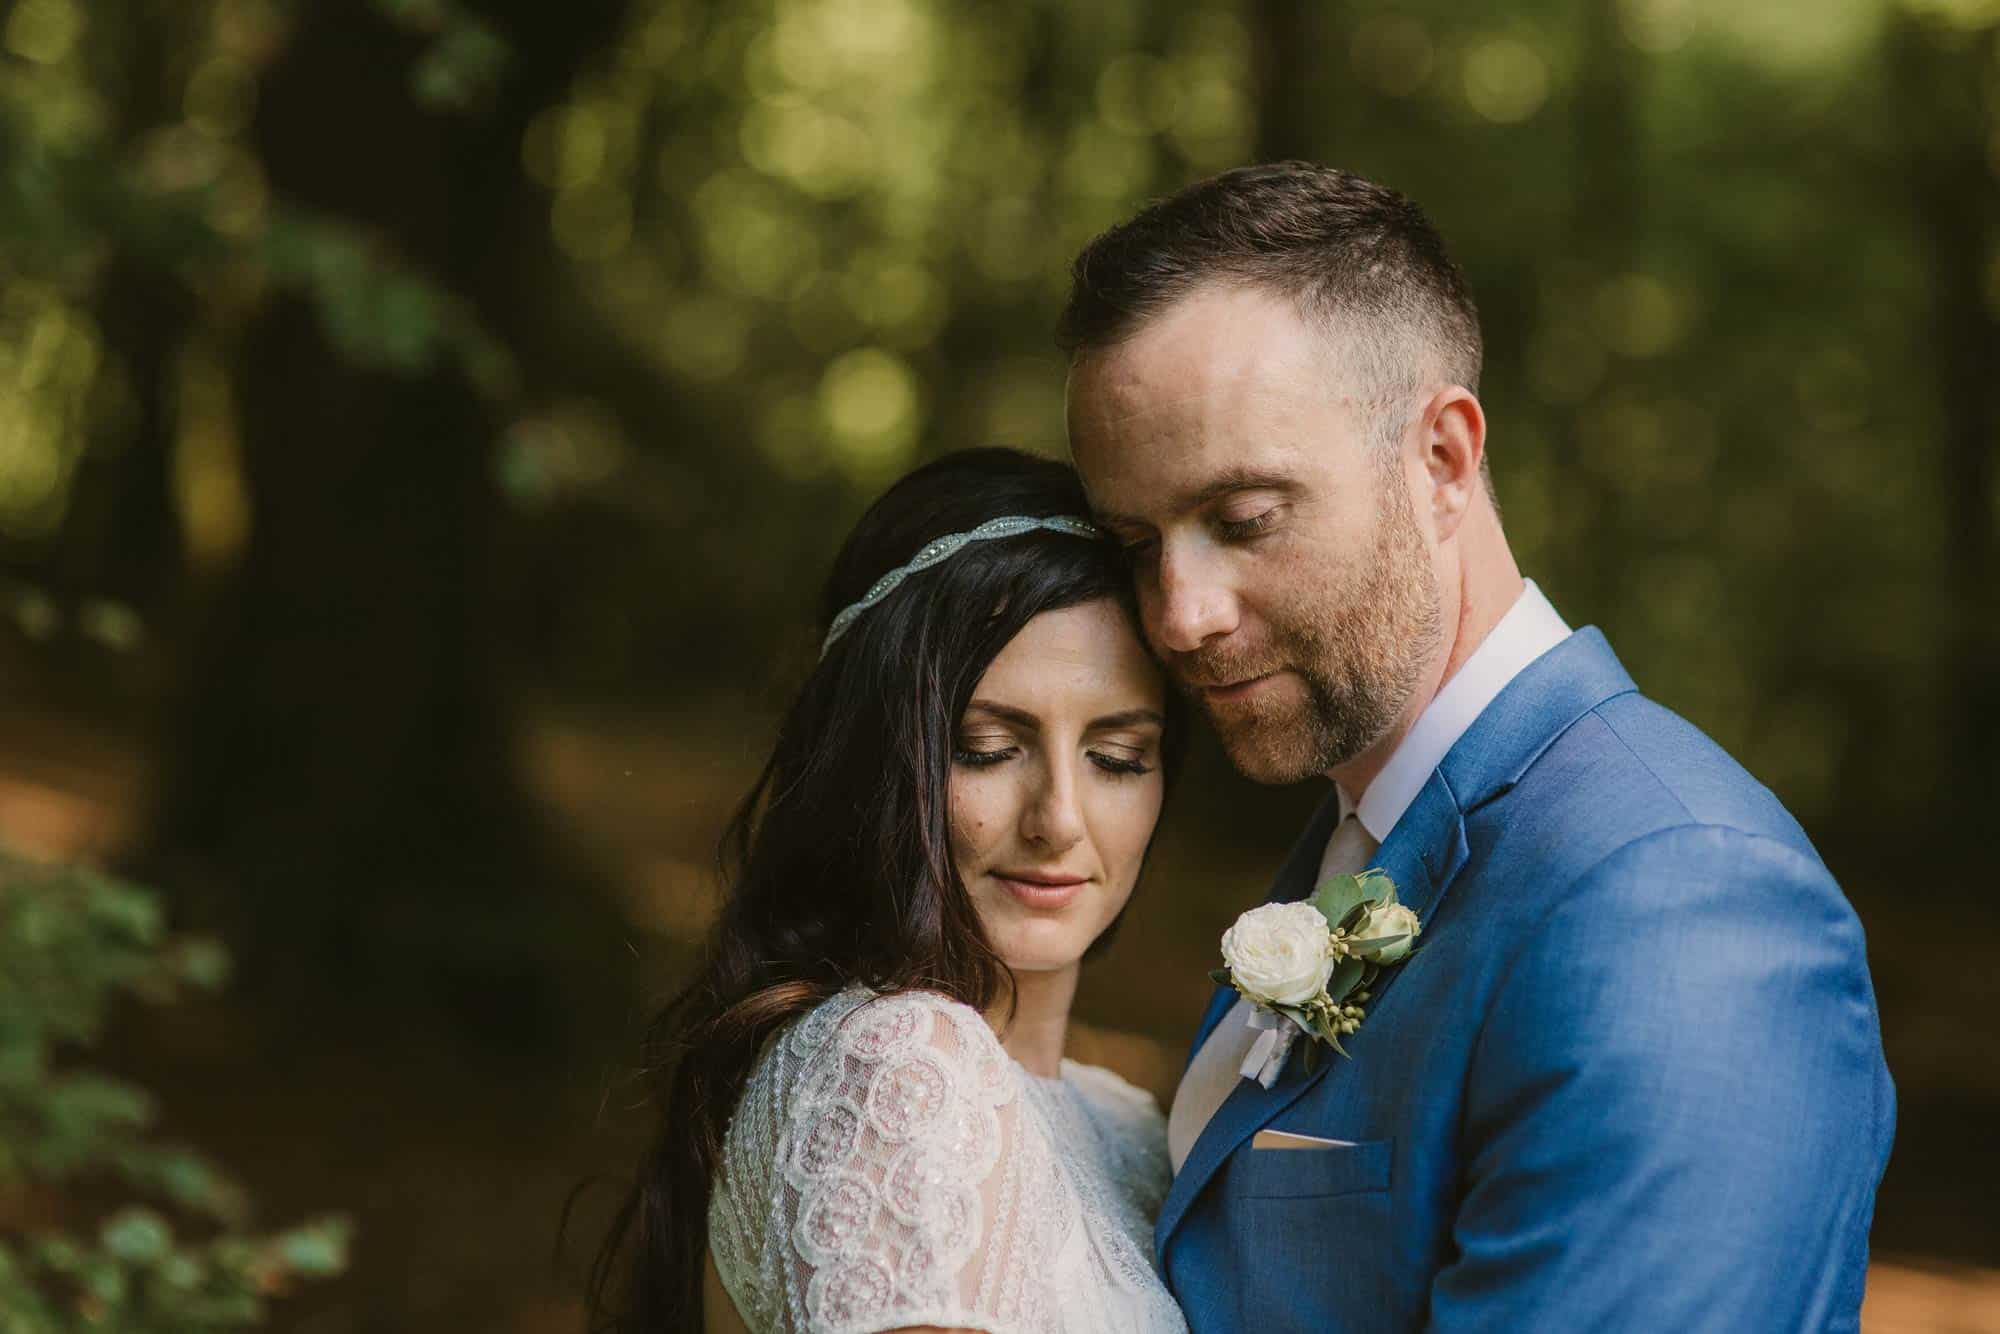 Elopement videographer Ireland, eyes closed